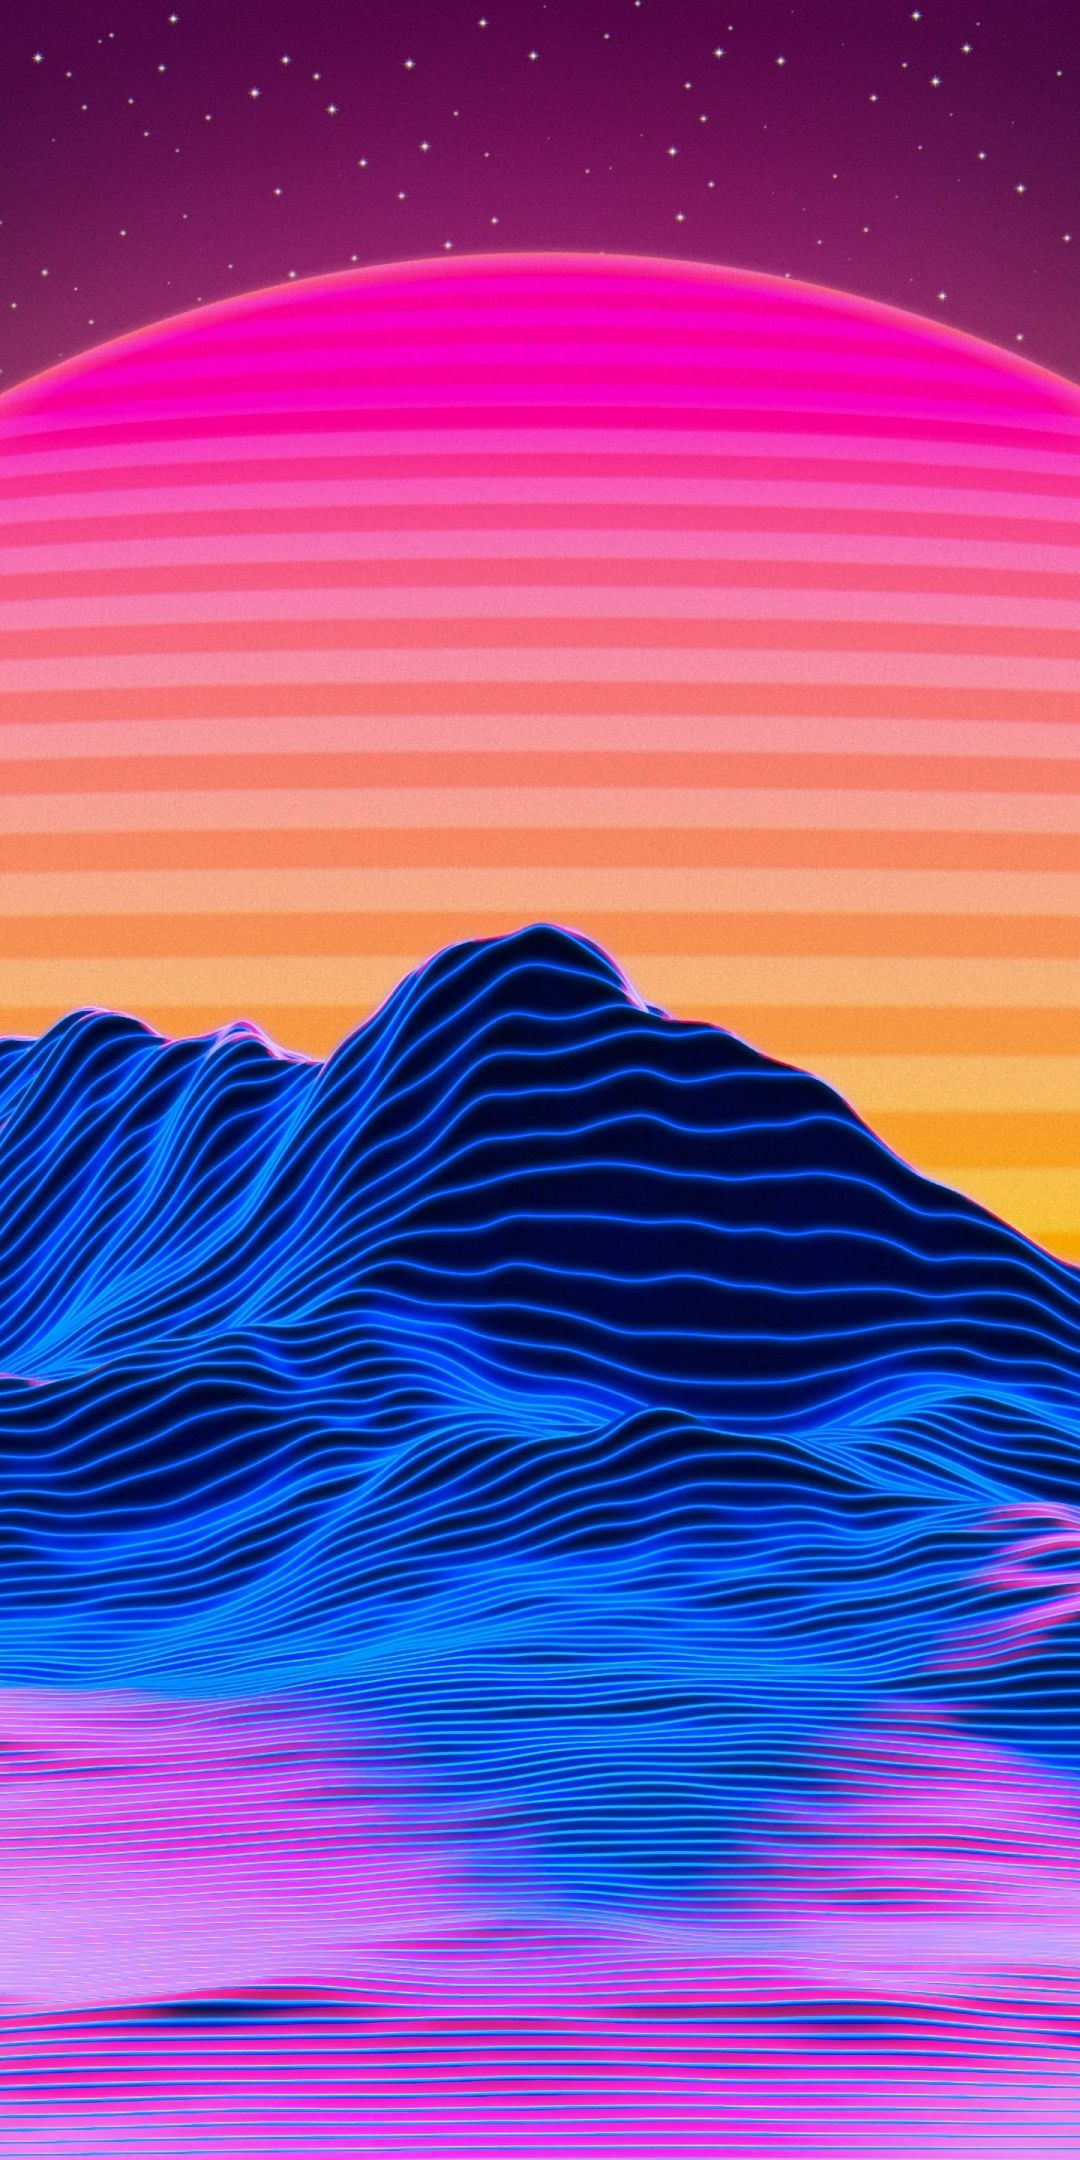 Retro Background Futuristic Landscape 1980s Style Digital Retro Landscape Cyber Surface 80s Par Sci Fi Background Retro Background Iphone Wallpaper Landscape